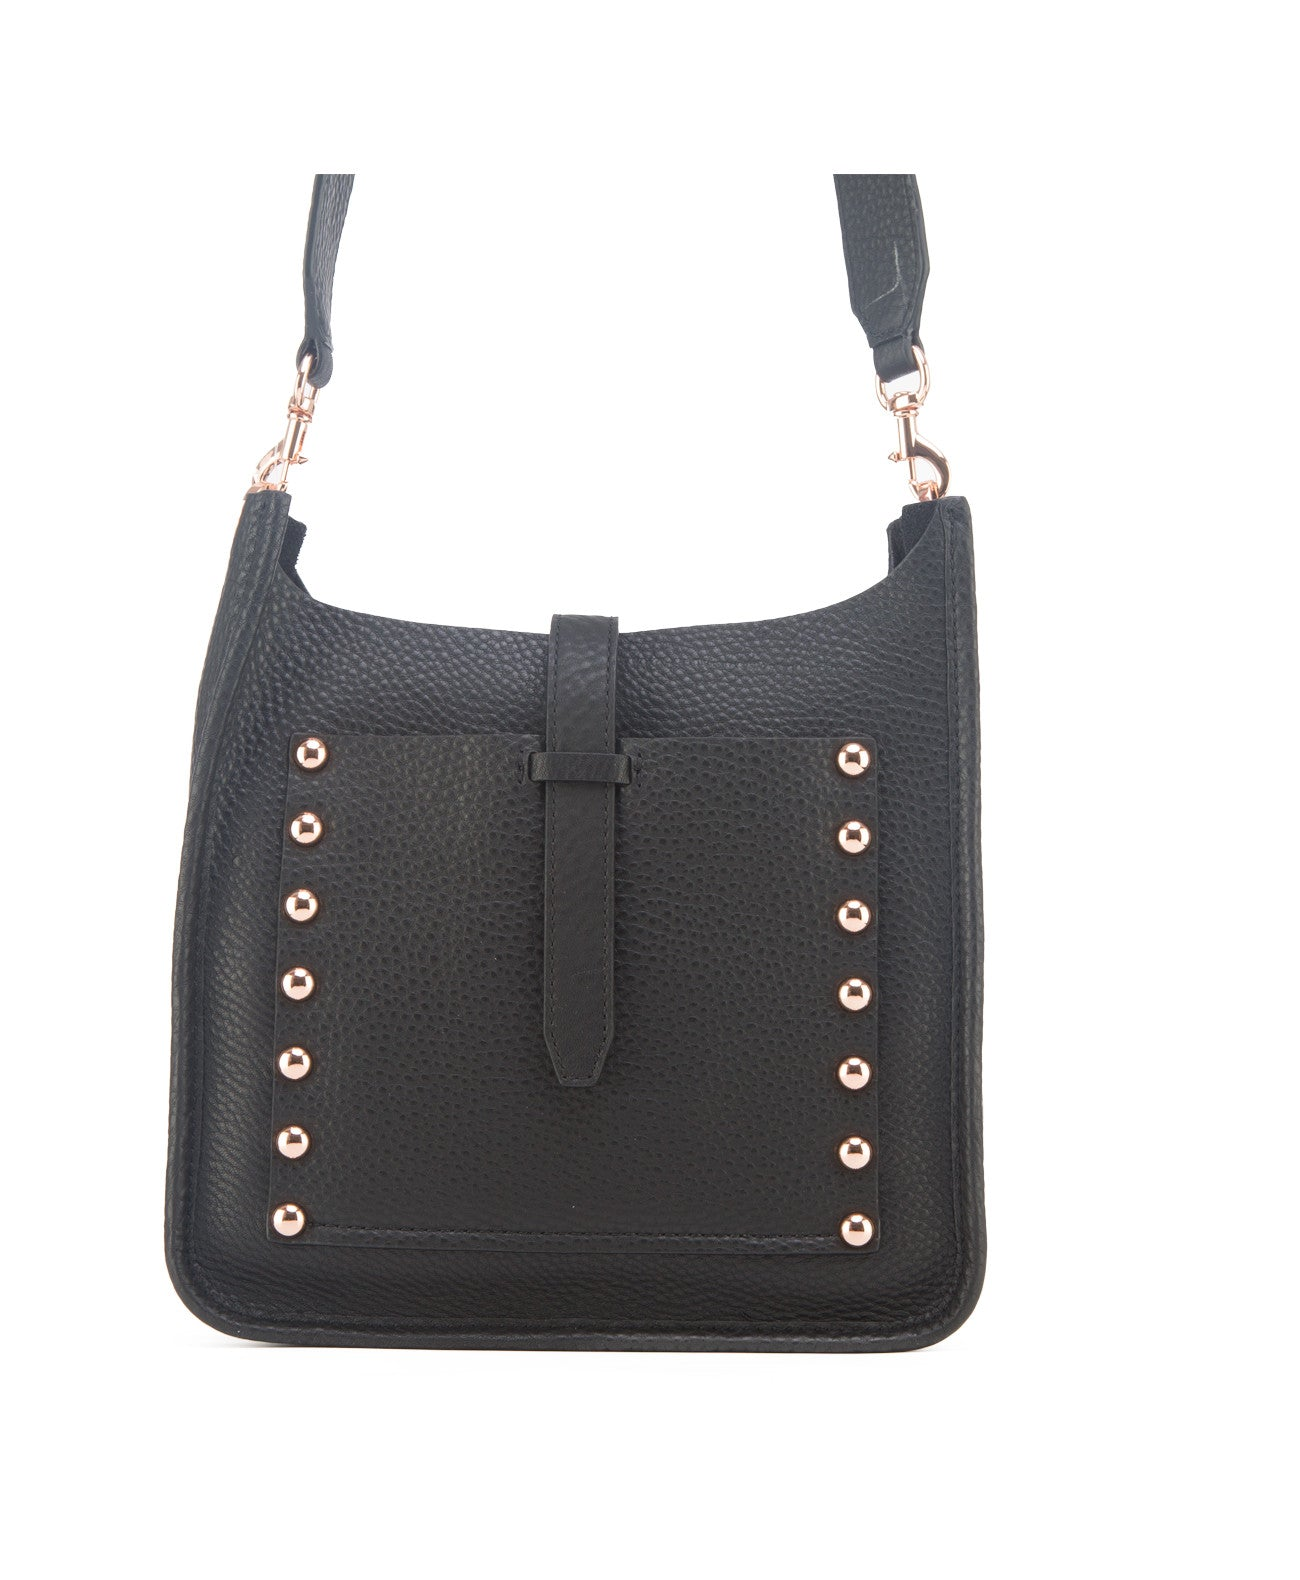 Small feed black crossbody bag - Koko & Palenki - 1